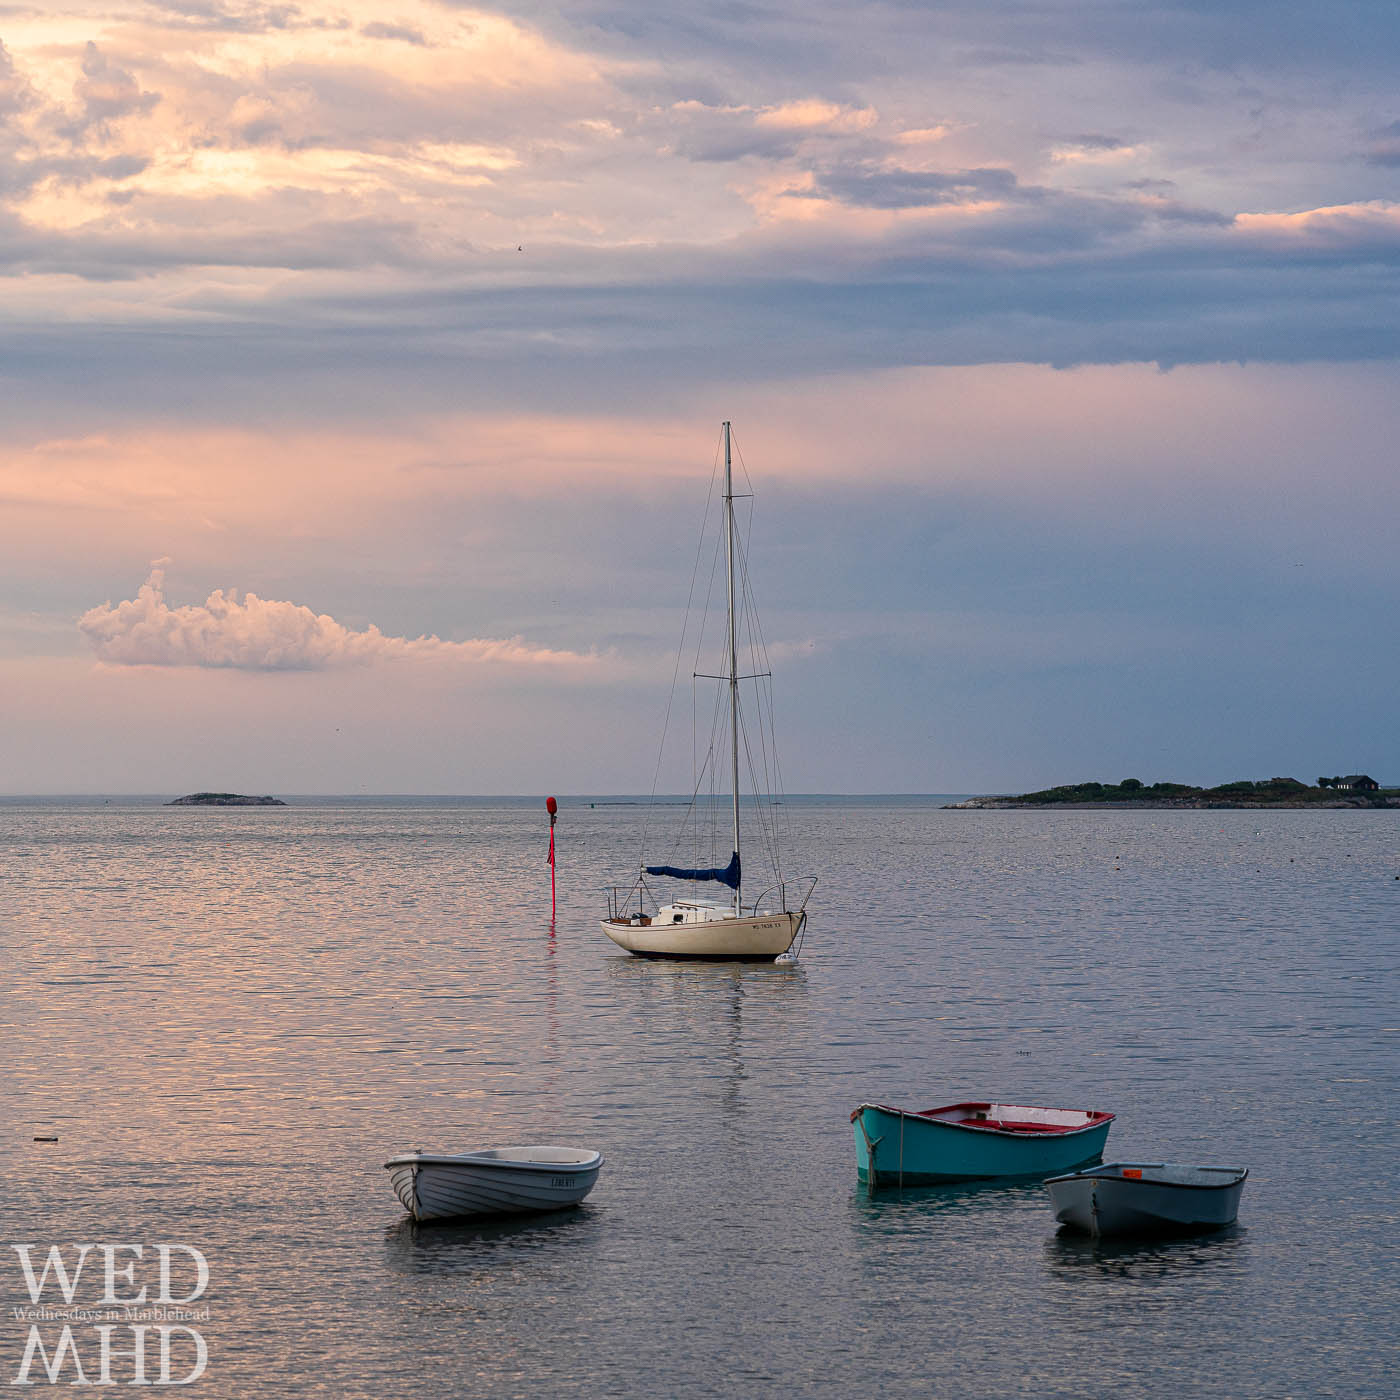 A dinghy named Liberty shares the calm water of Little Harbor with two others and a sailboat under soft sunset sky